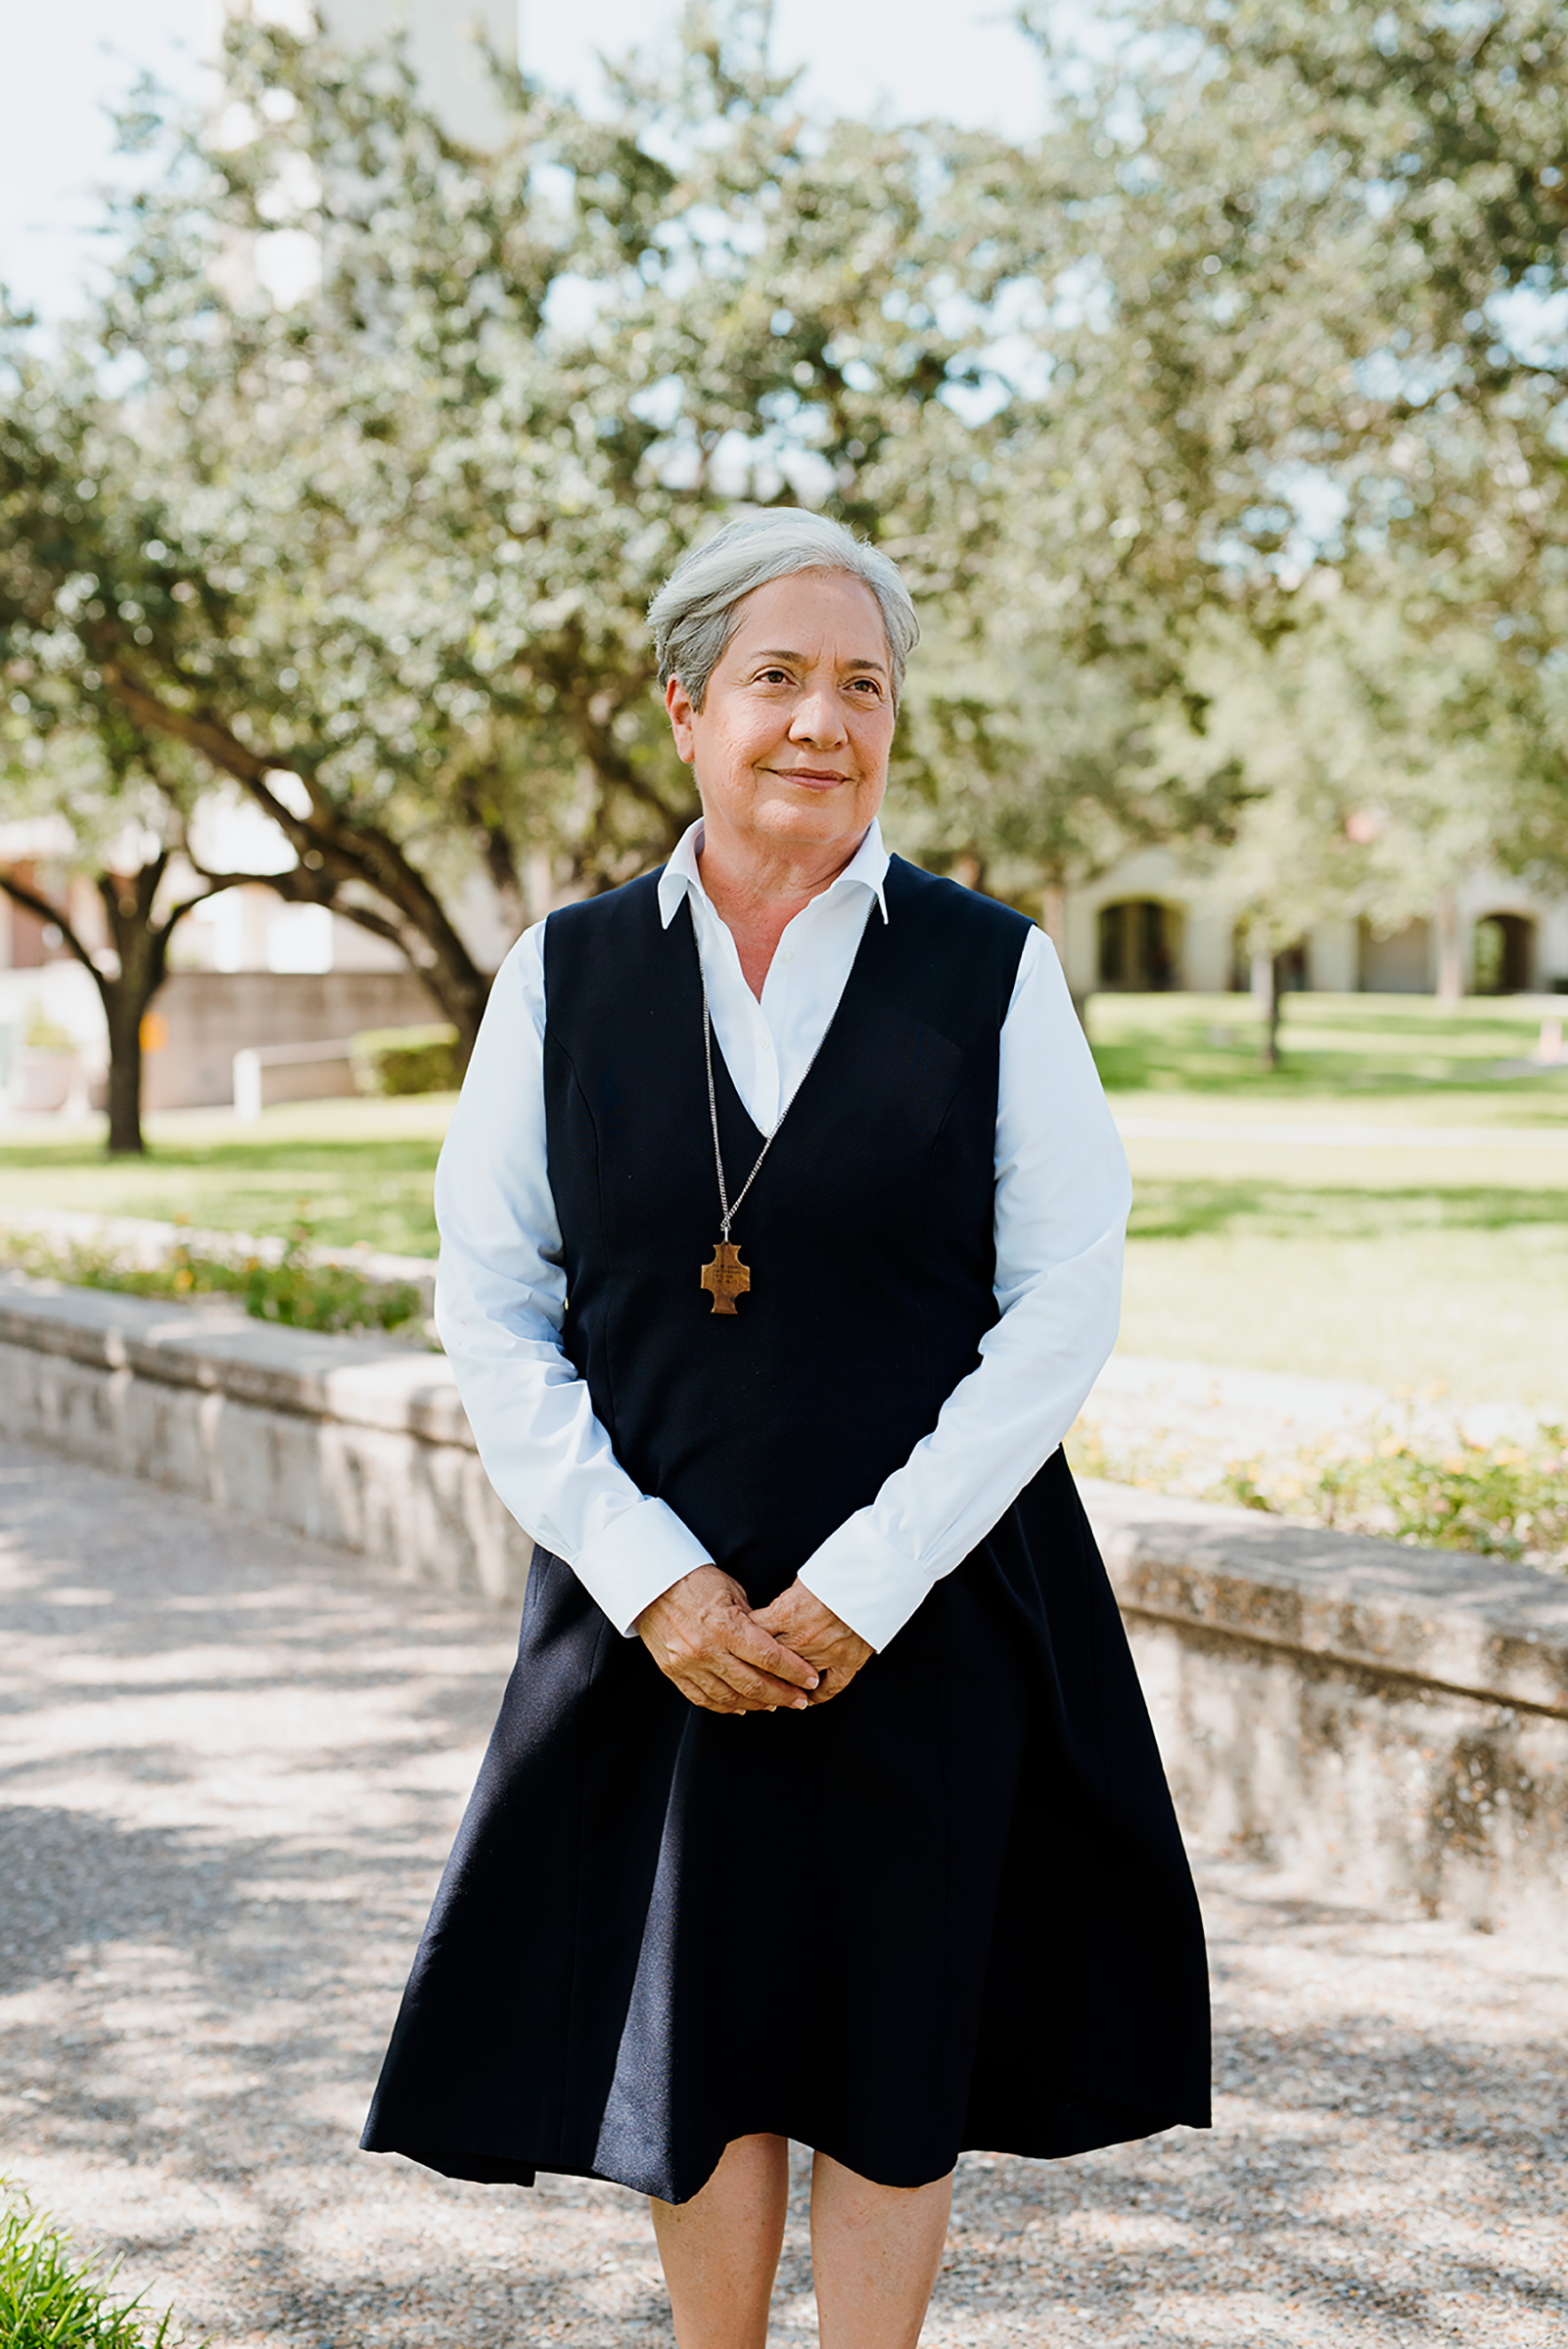 Sister Norma Pimentel Is on the 2020 TIME 100 List | TIME